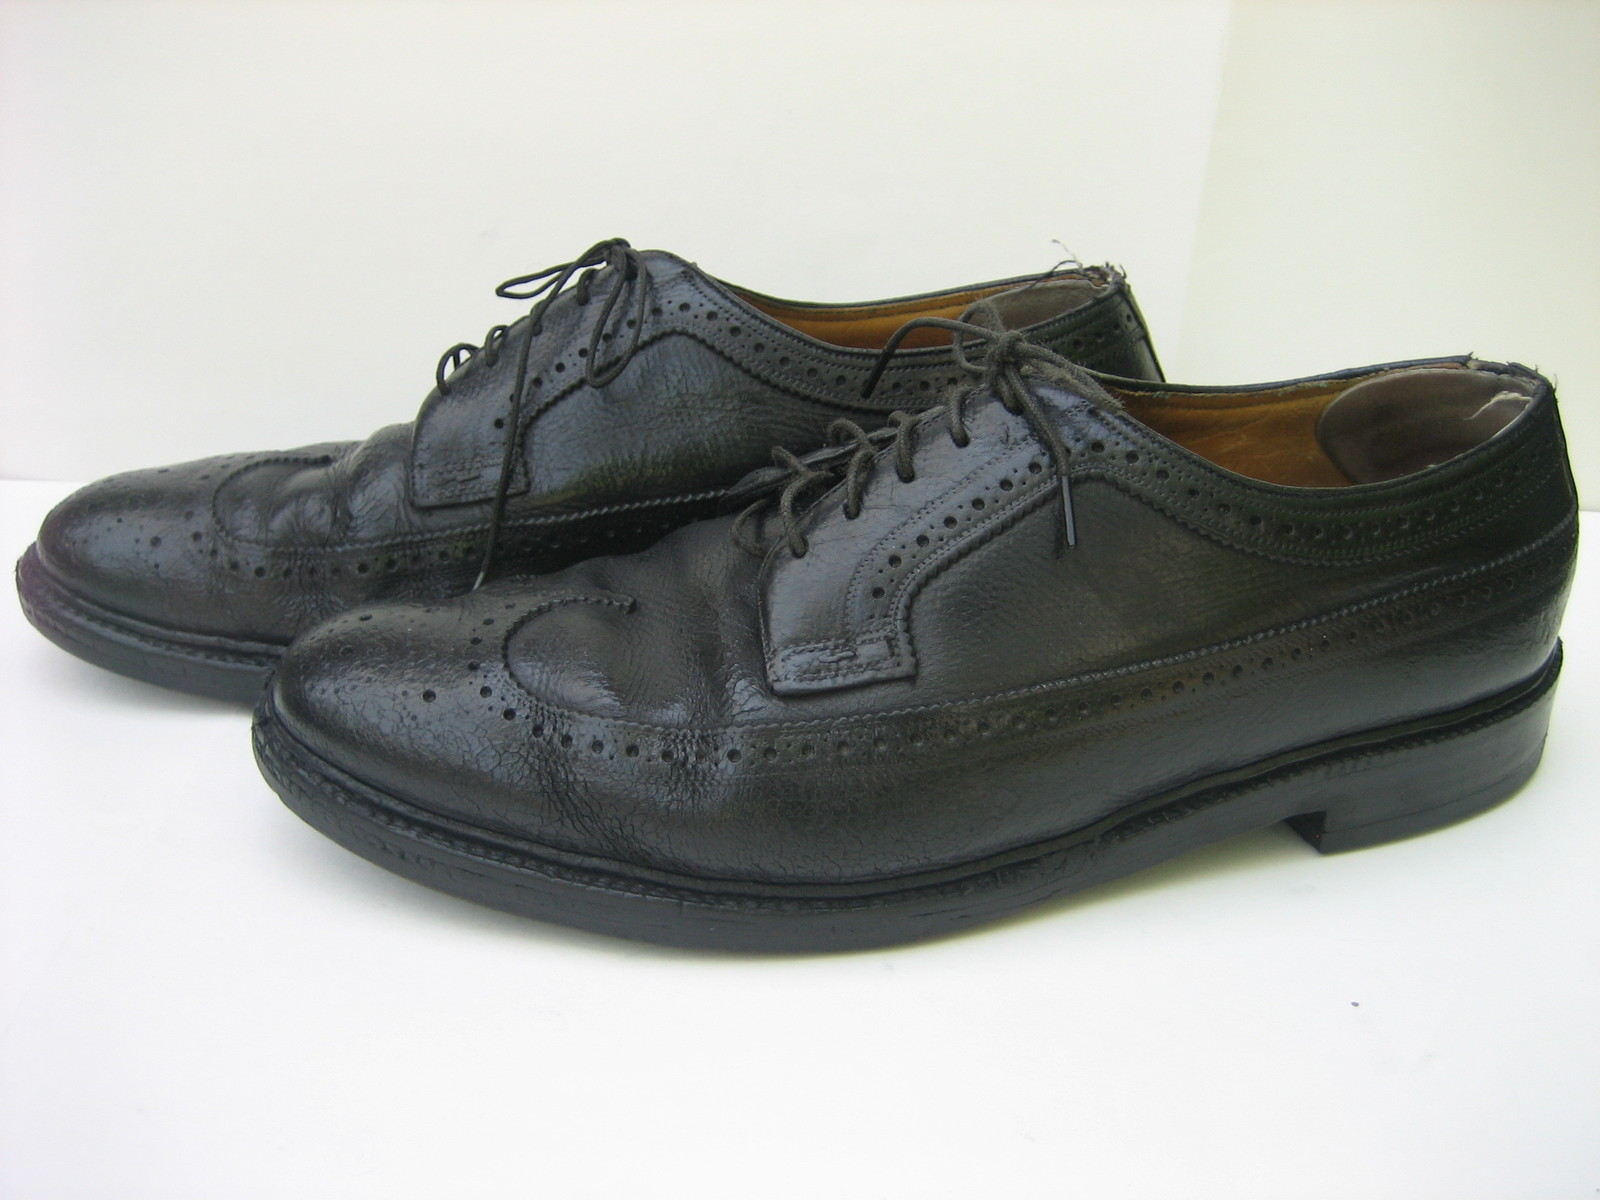 a41f1db1dacfe Florsheim Imperial Shoes: 16 listings